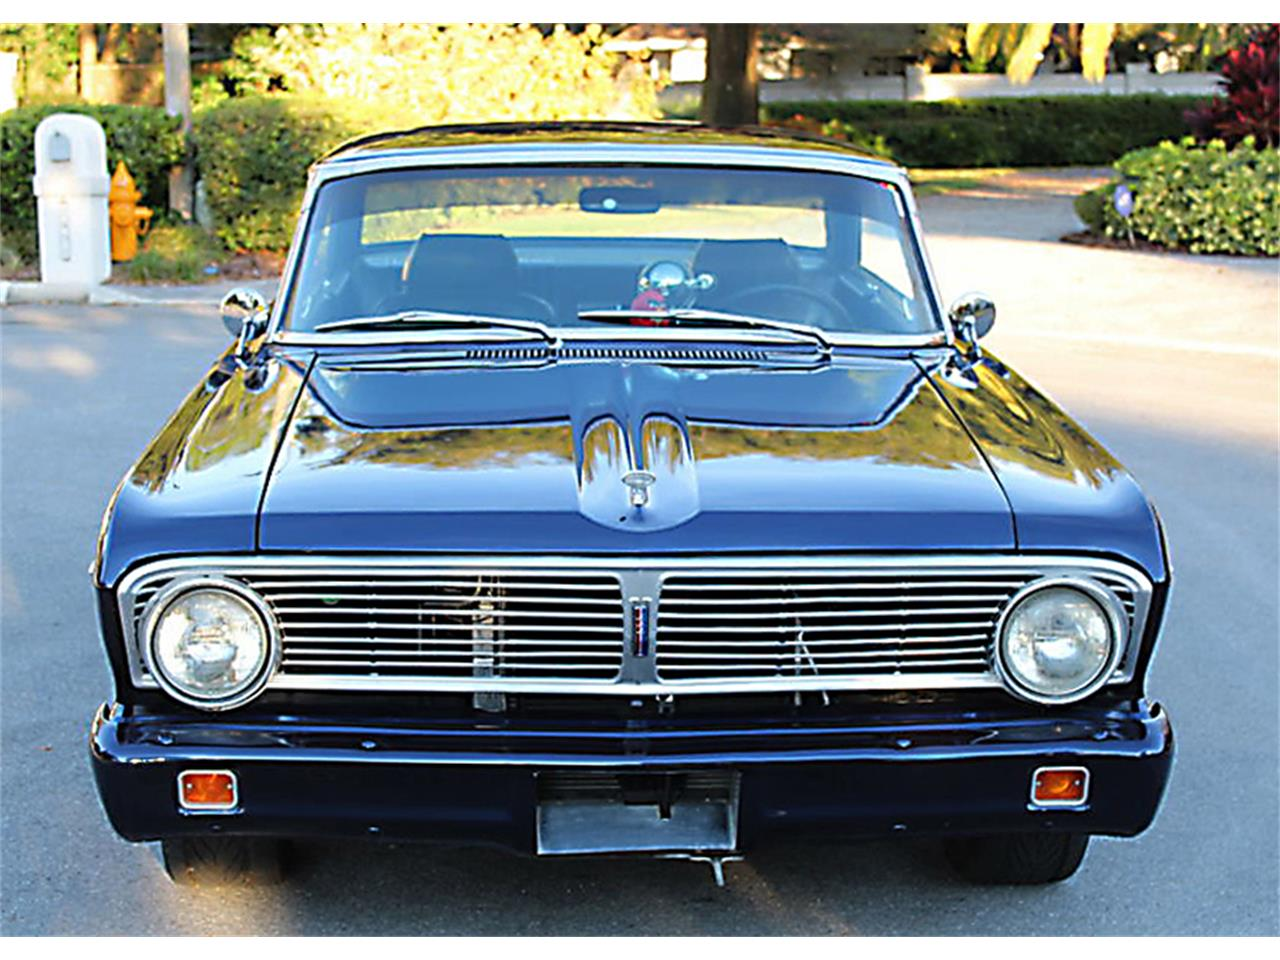 Large Picture of '65 Ford Falcon located in Florida - $29,500.00 - PH47